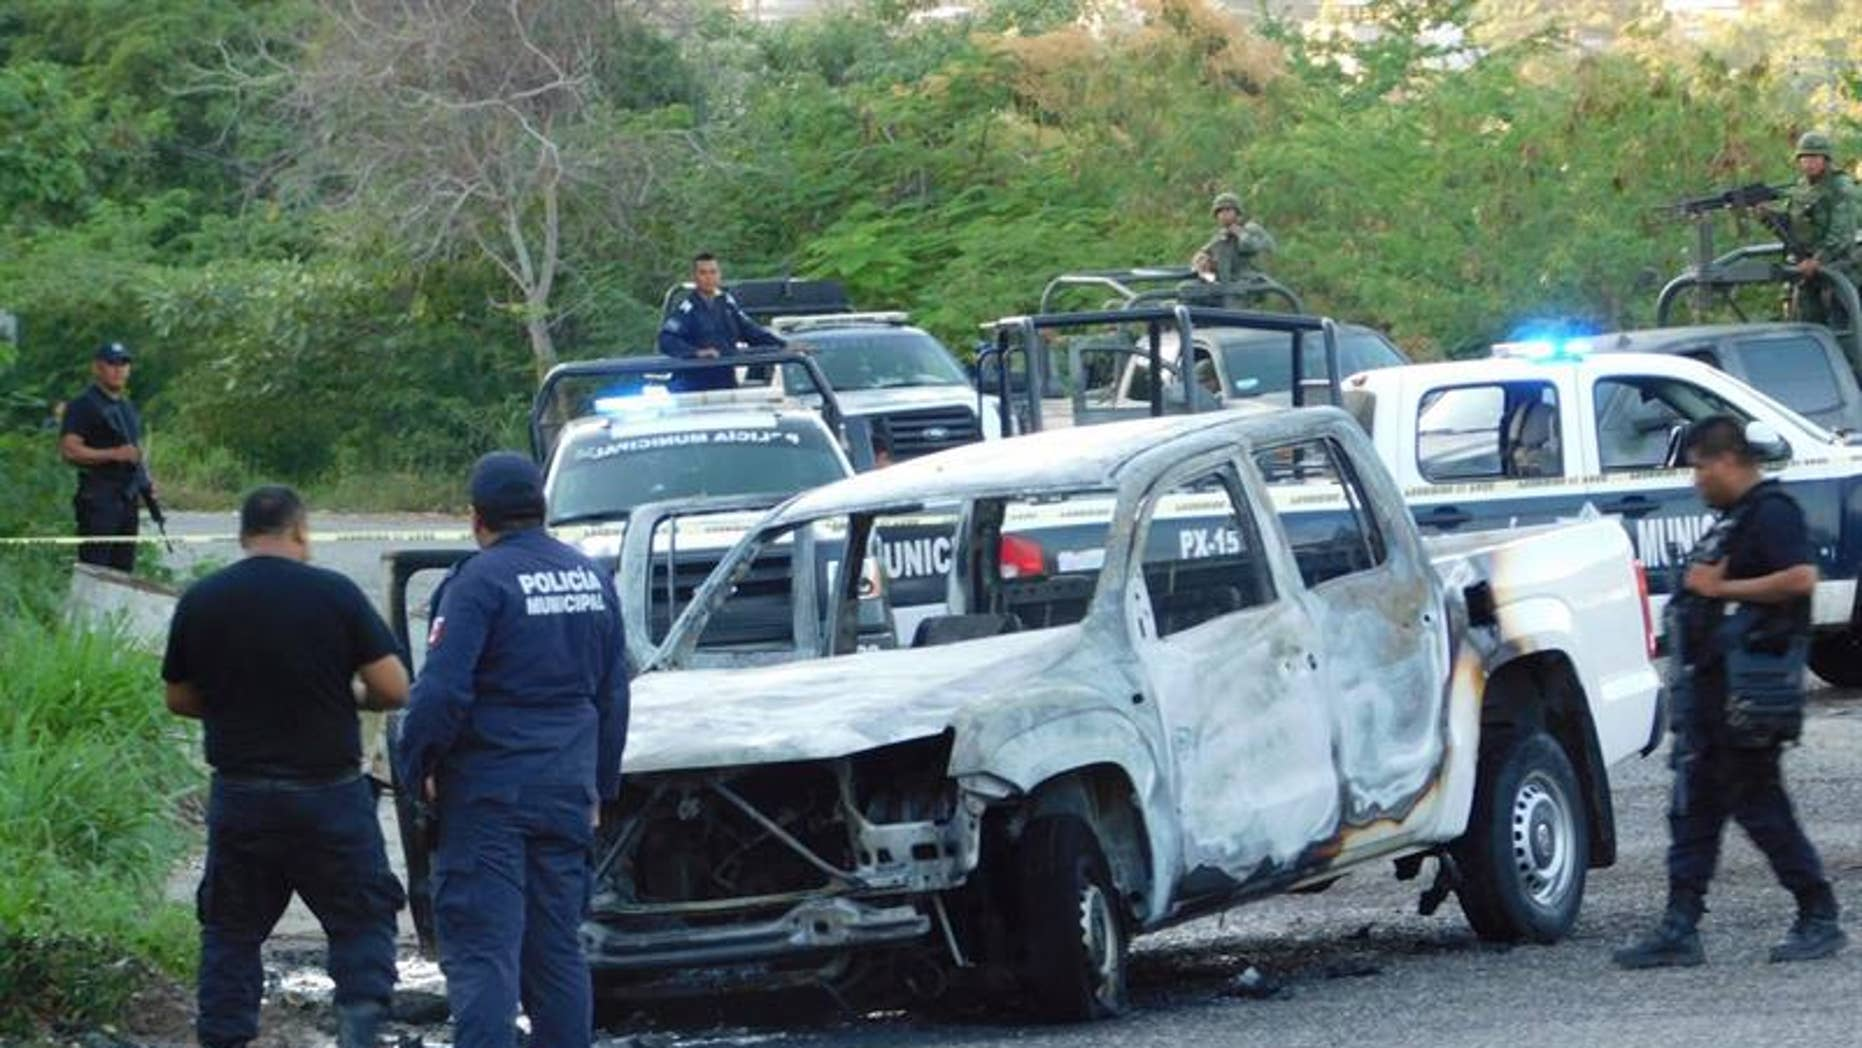 This is the vehicle where three members of Mexico's federal police were found burned to death on Dec. 8, 2016.